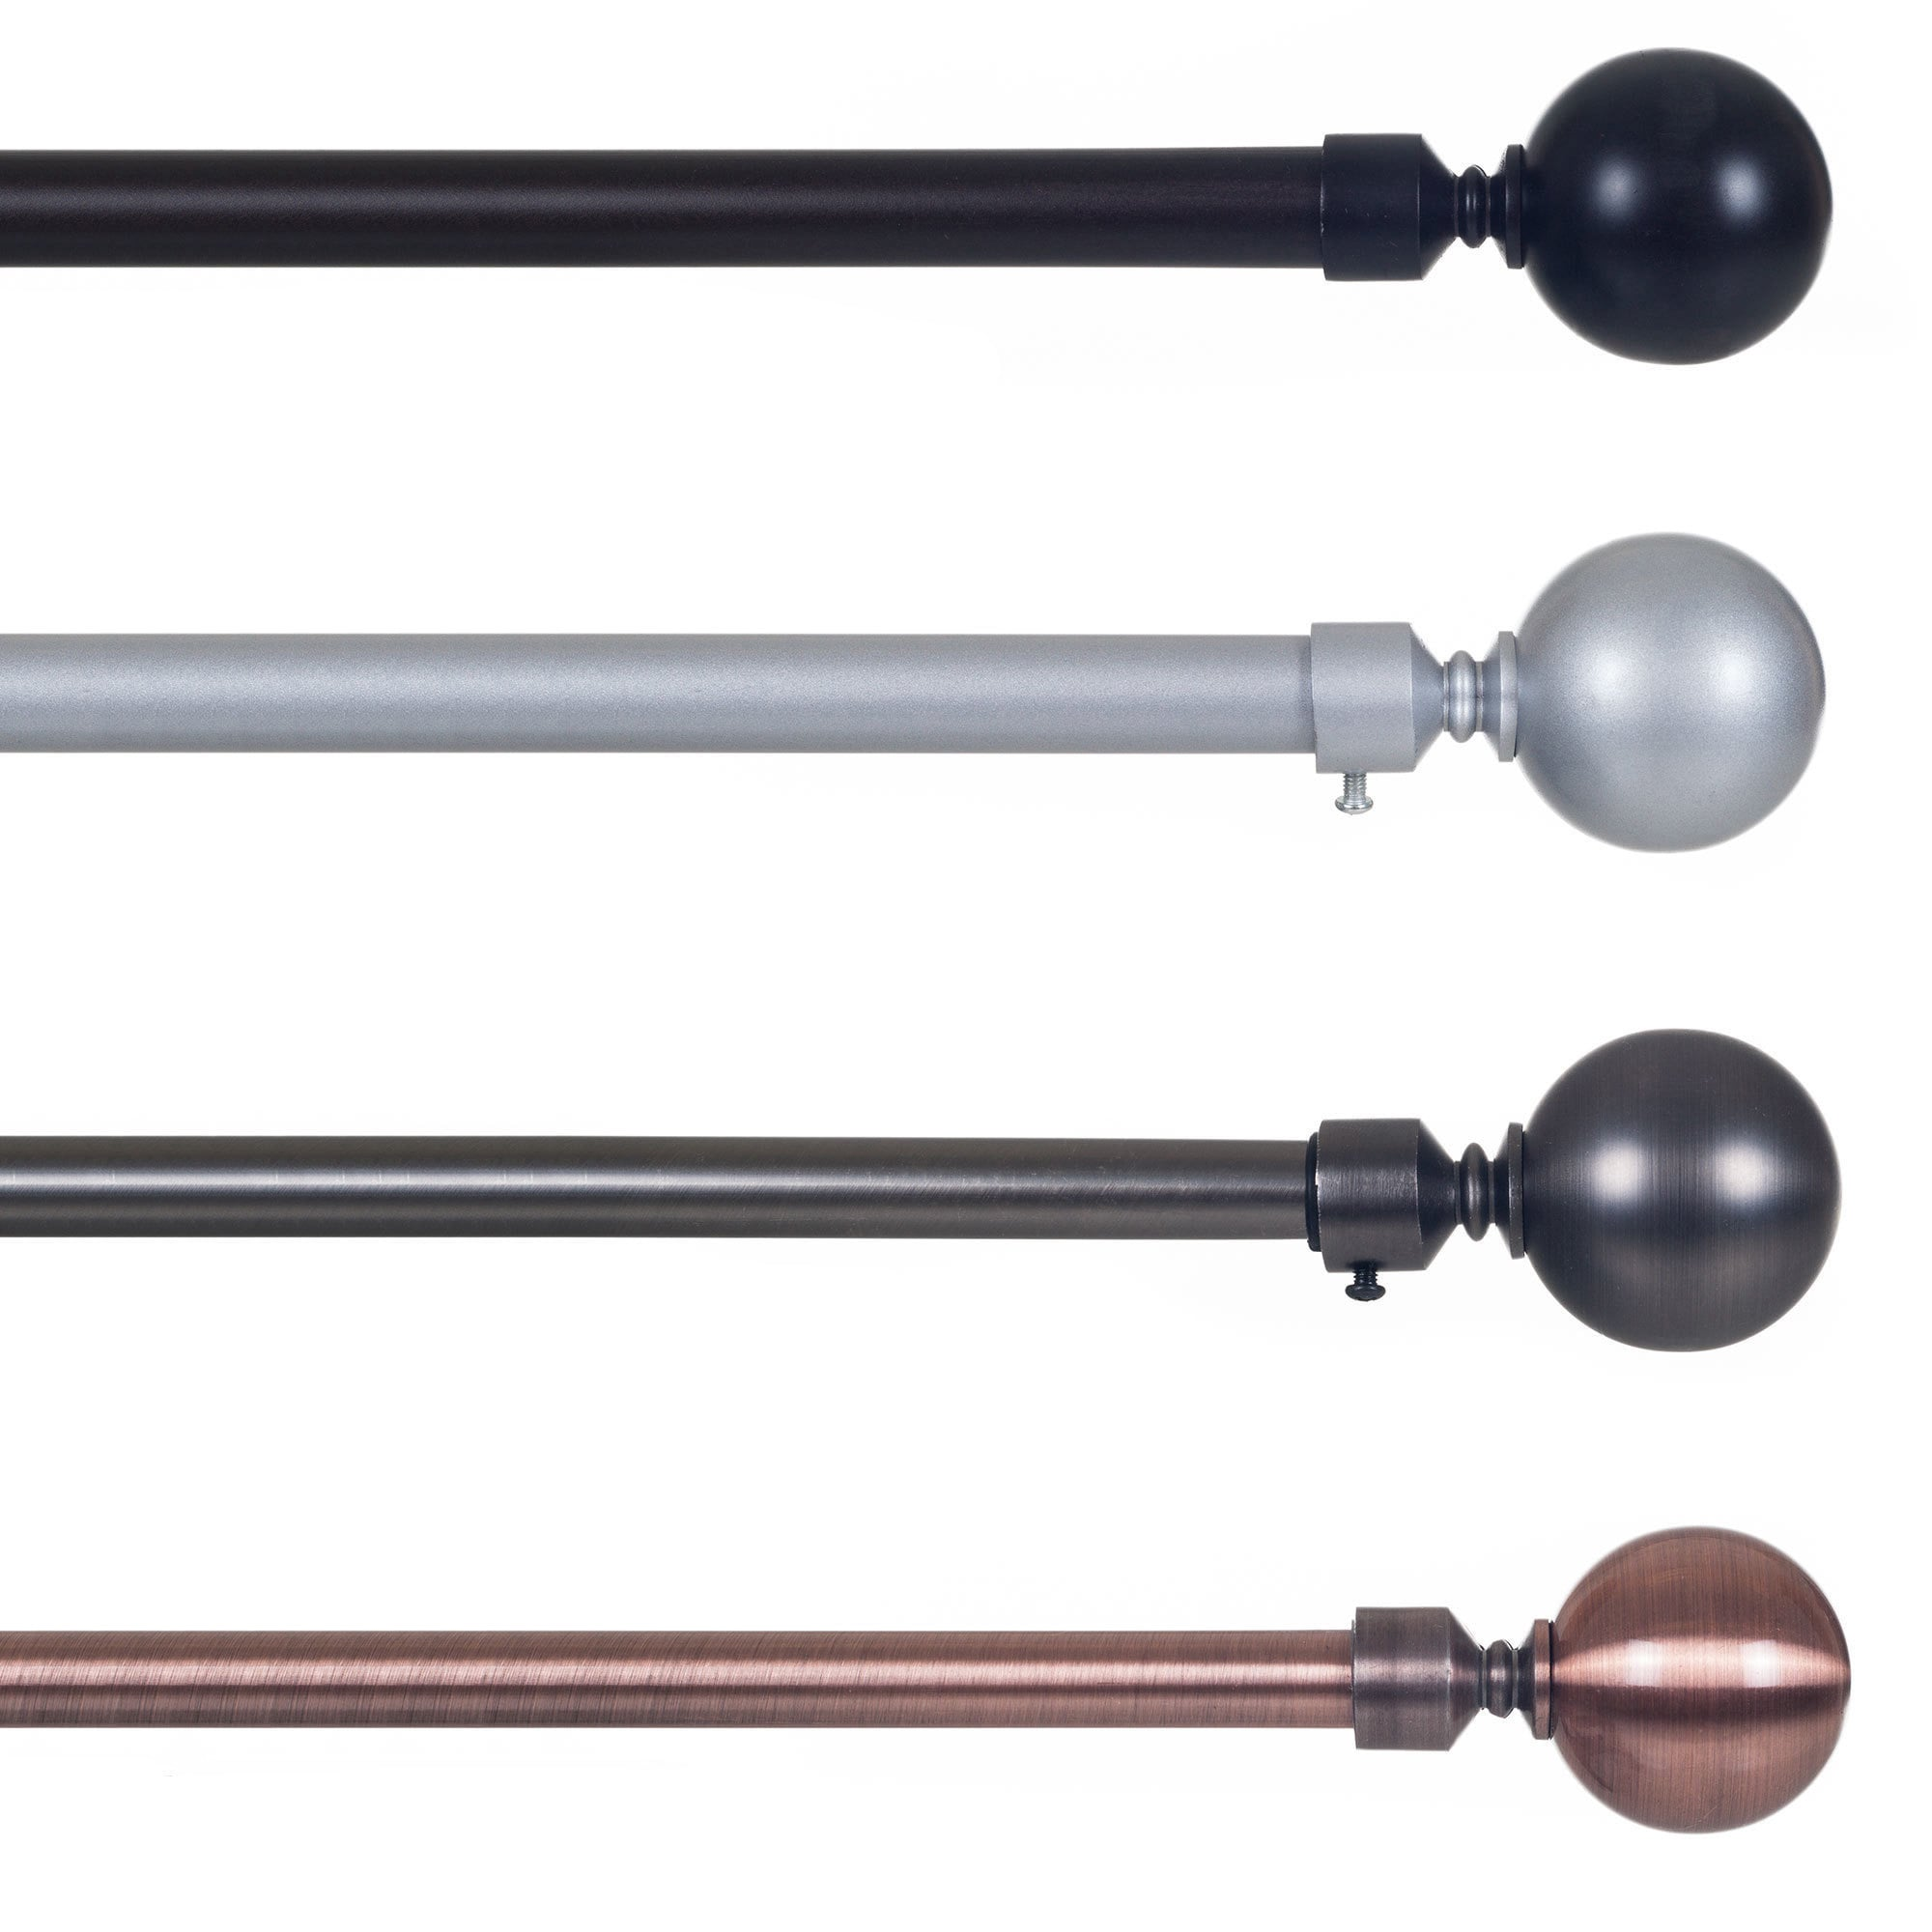 Modern curtain rods and finials - Lavish Home Sphere Finial Adjule Modern Curtain Rod Set Free